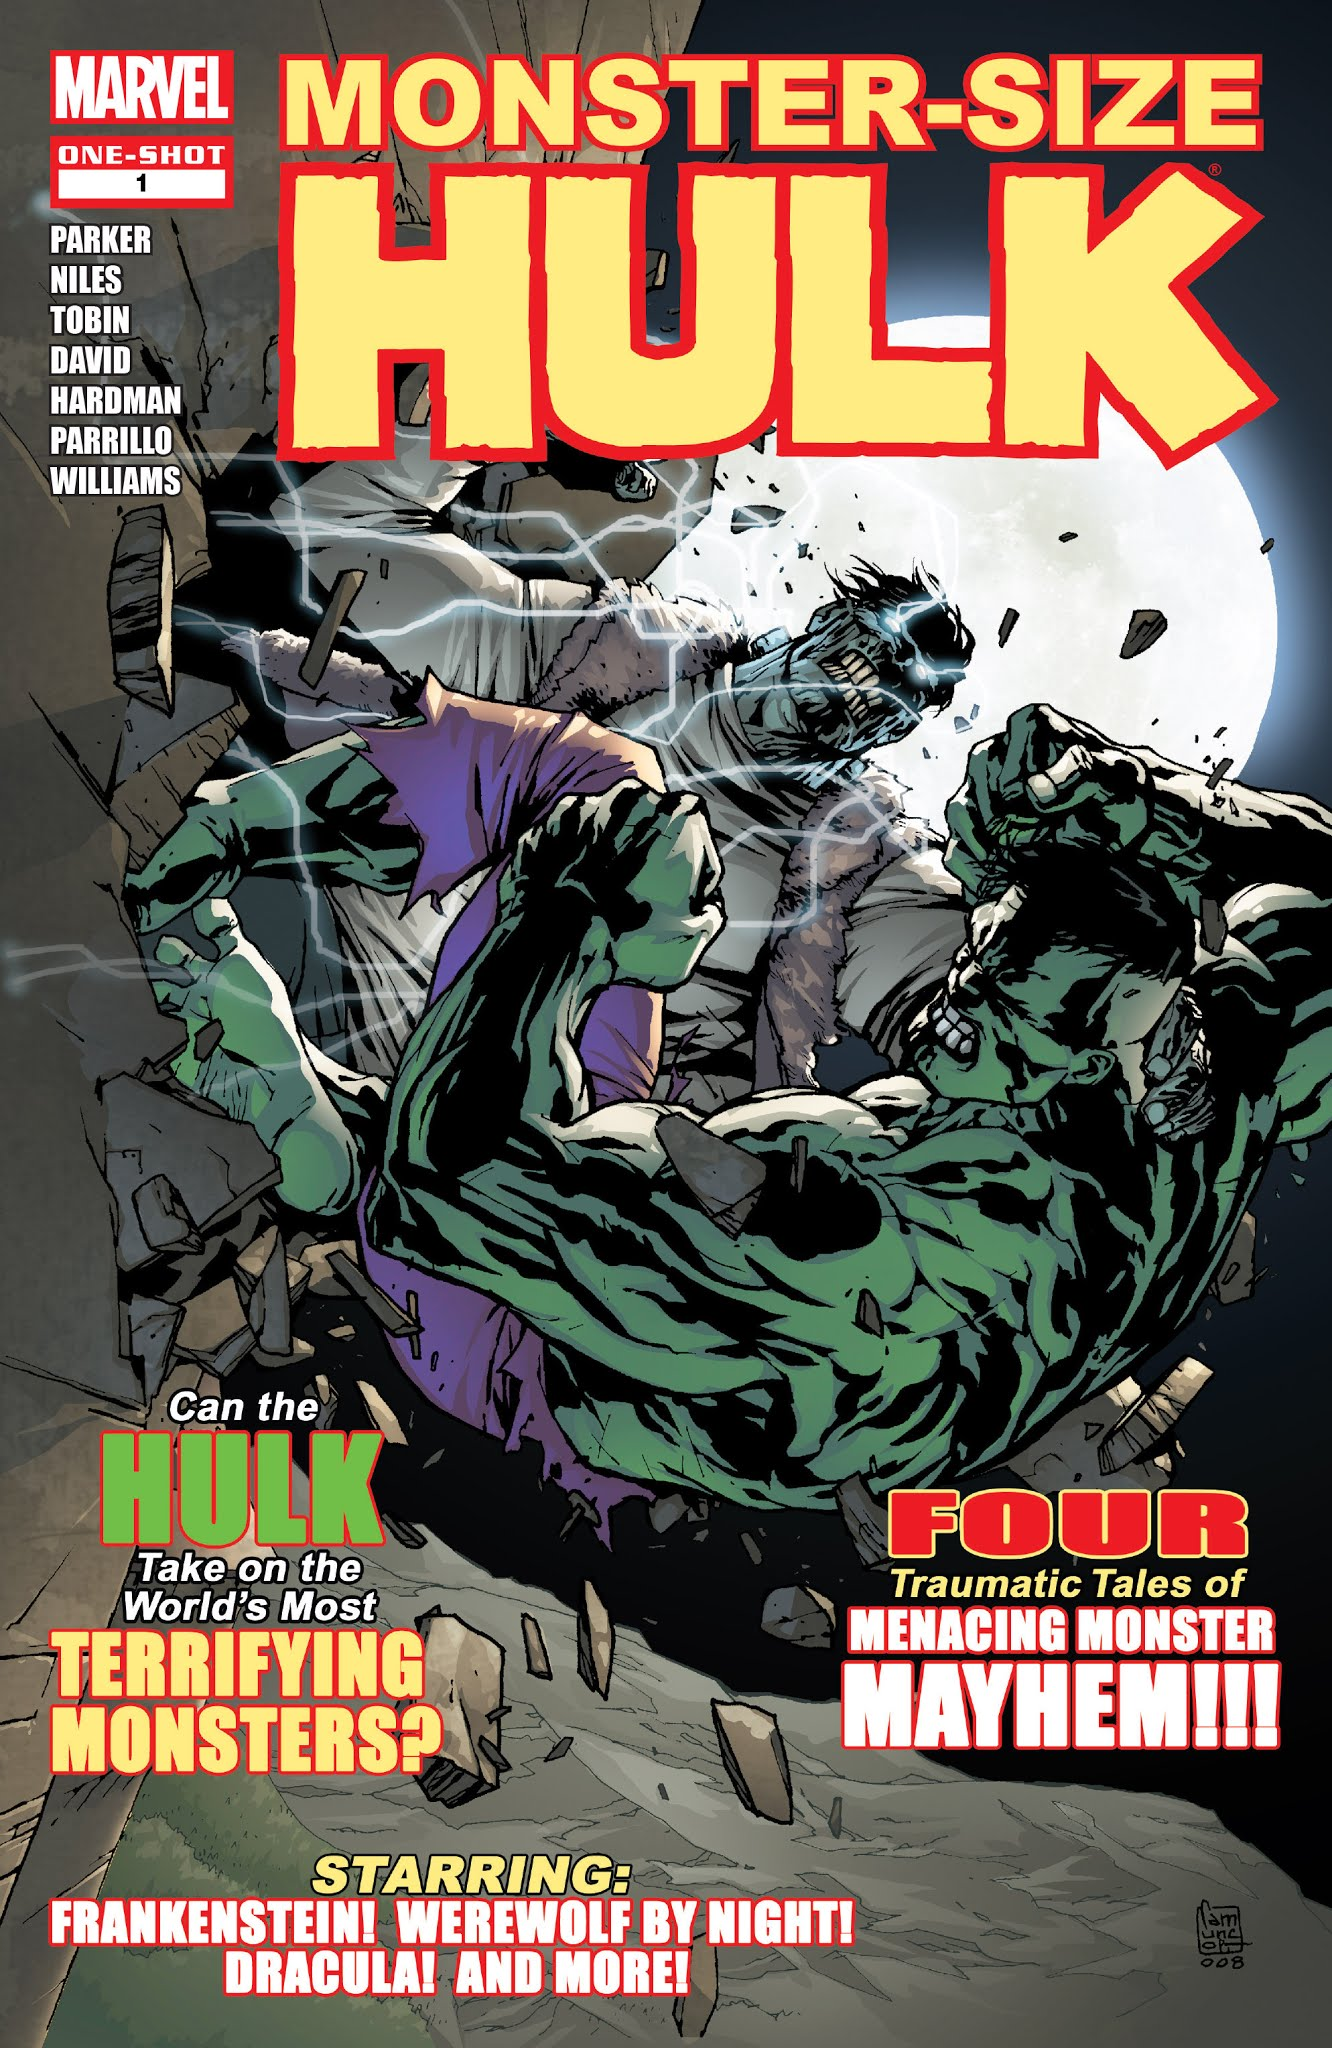 Hulk Monster-Size Special Full Page 1